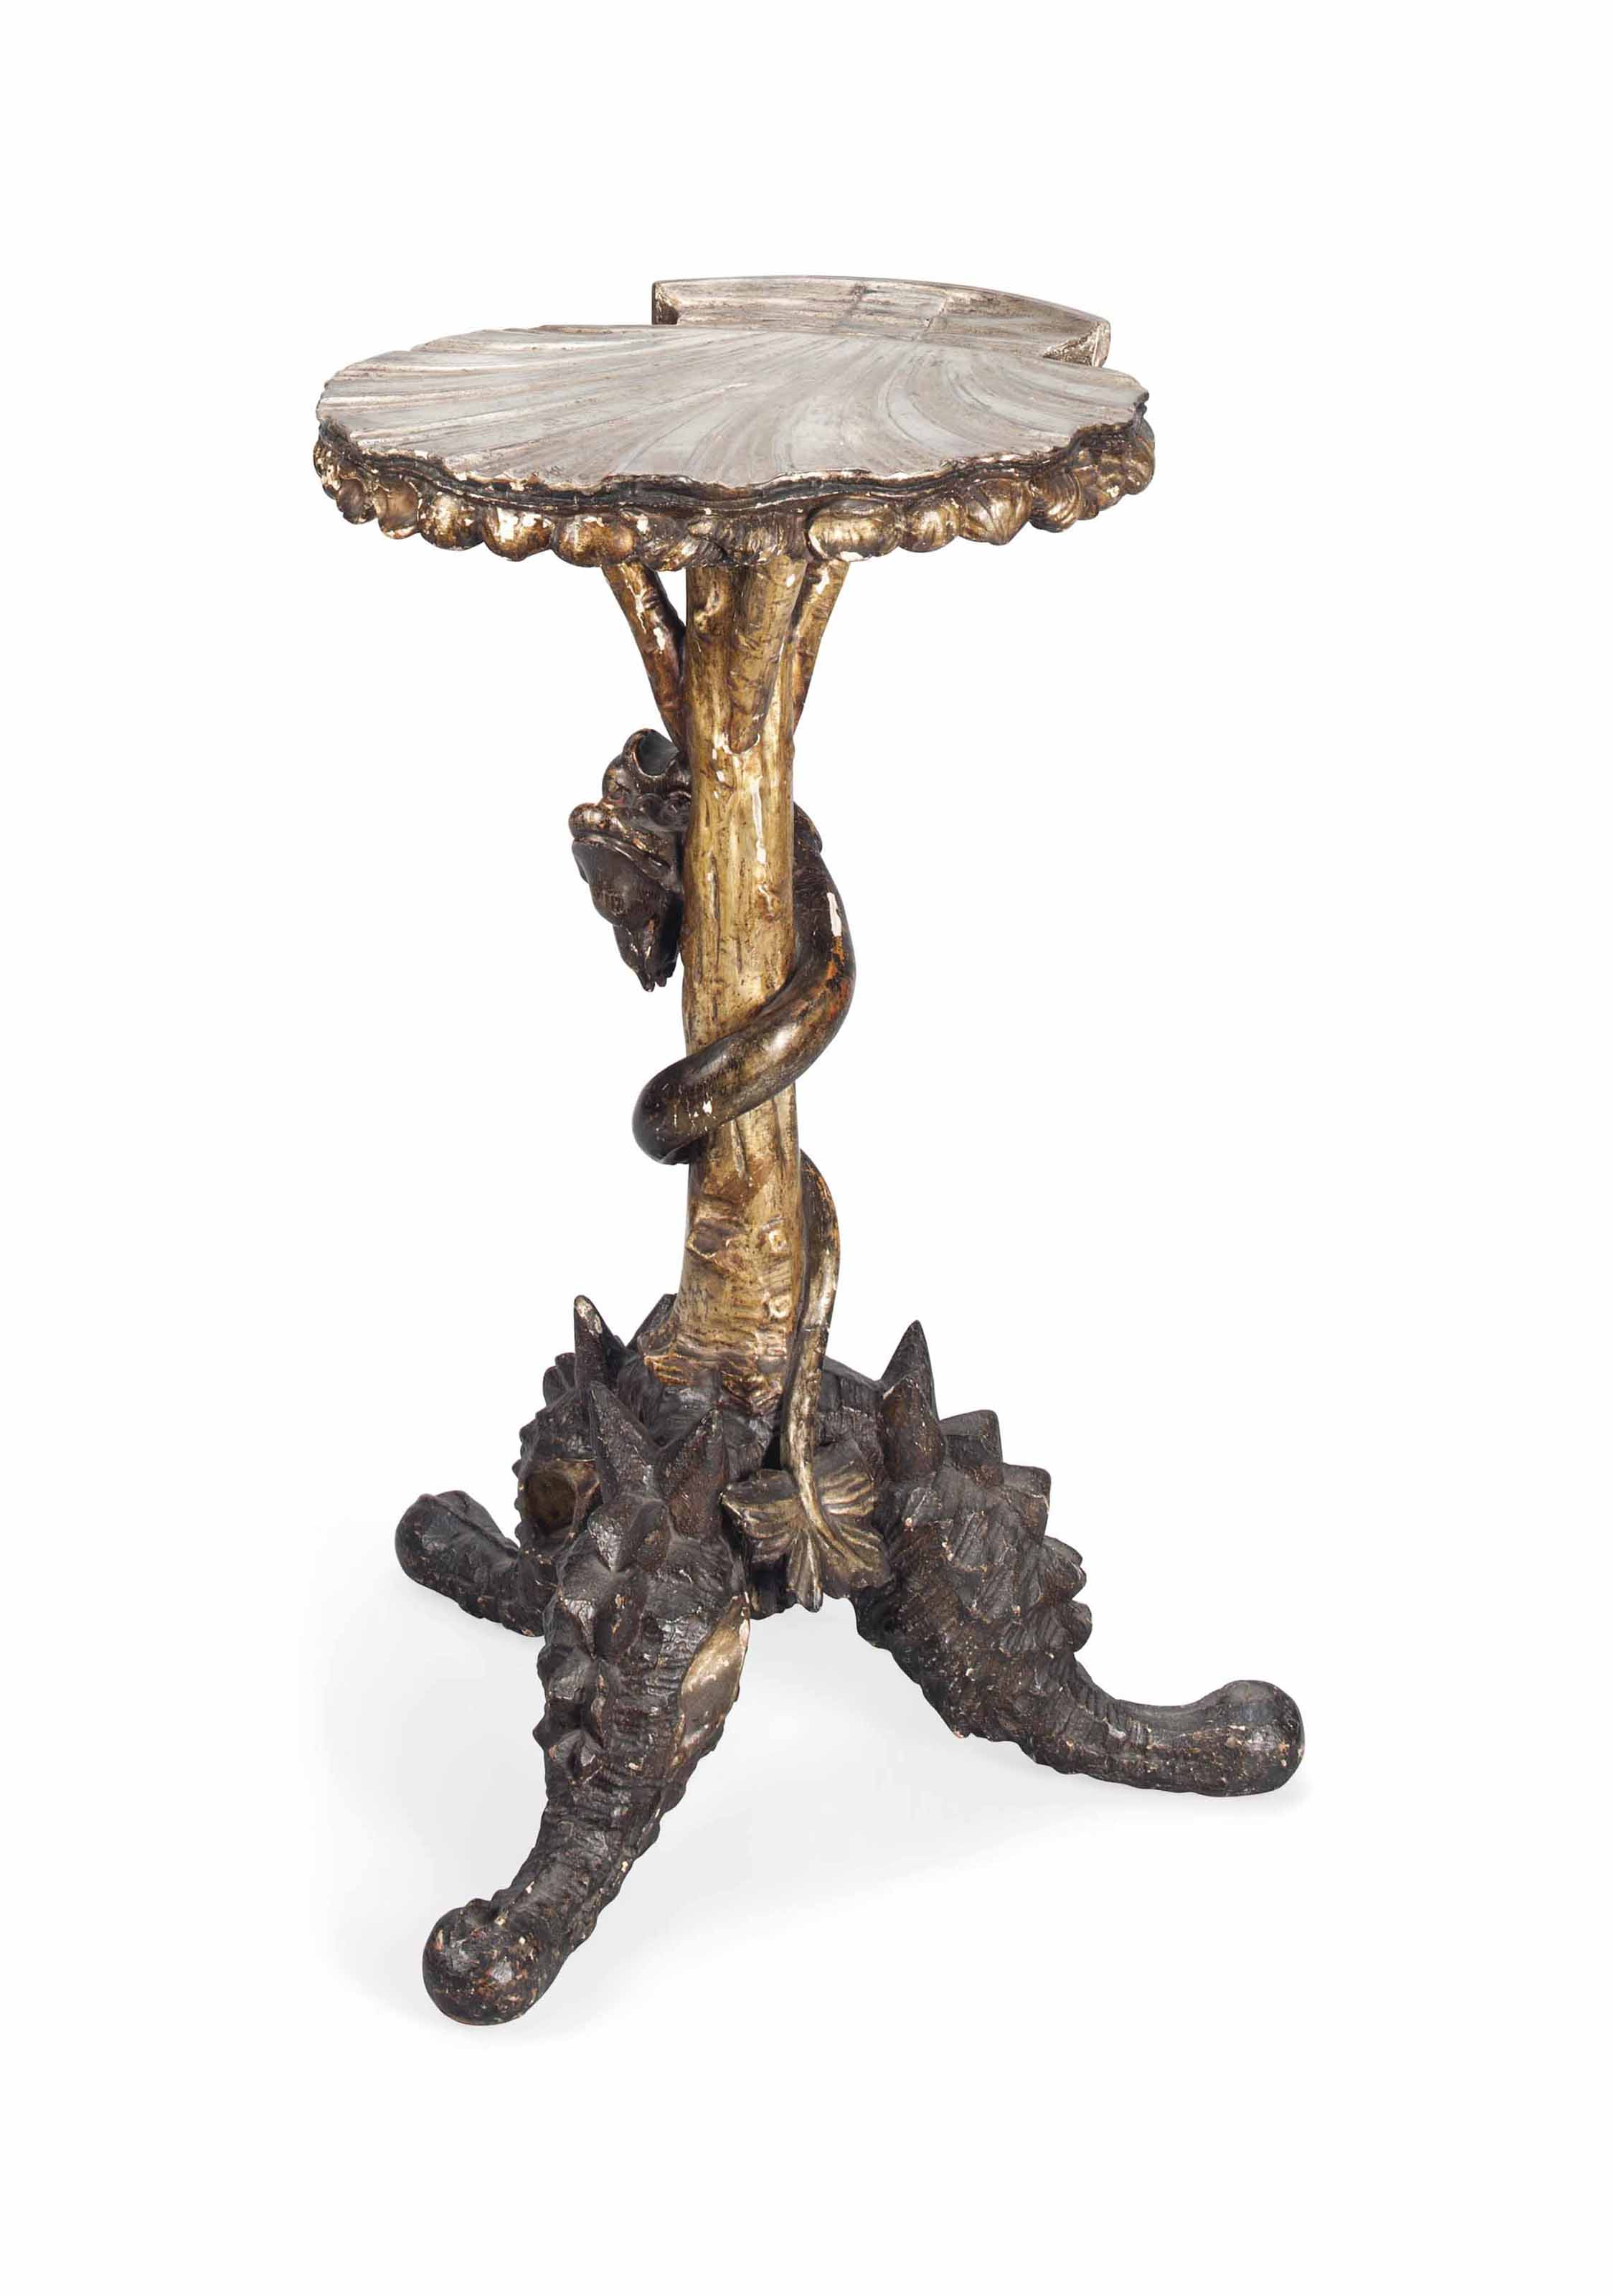 A VENETIAN SILVERED WOOD GROTT